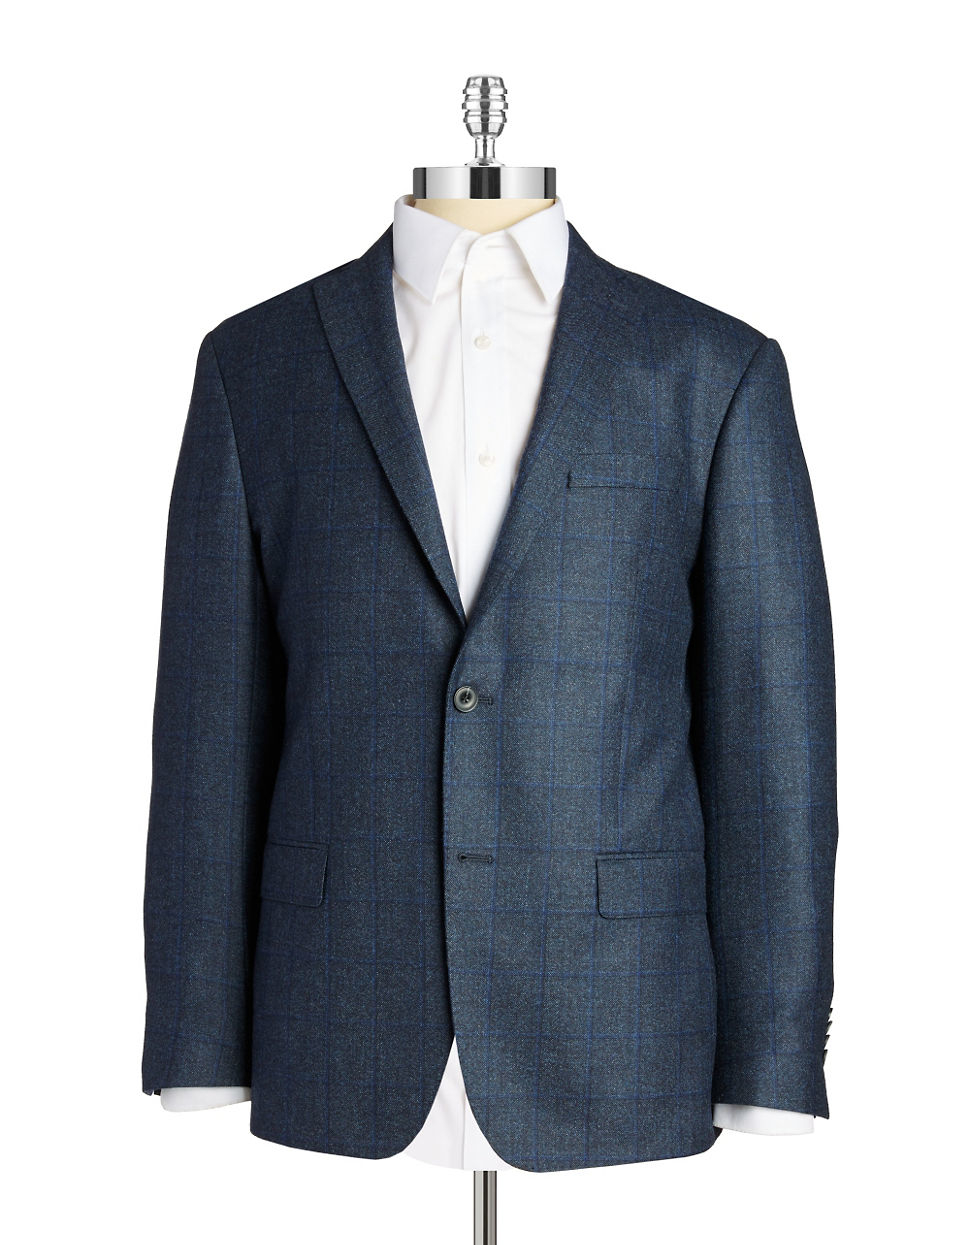 michael kors two button wool blazer in blue for men lyst. Black Bedroom Furniture Sets. Home Design Ideas